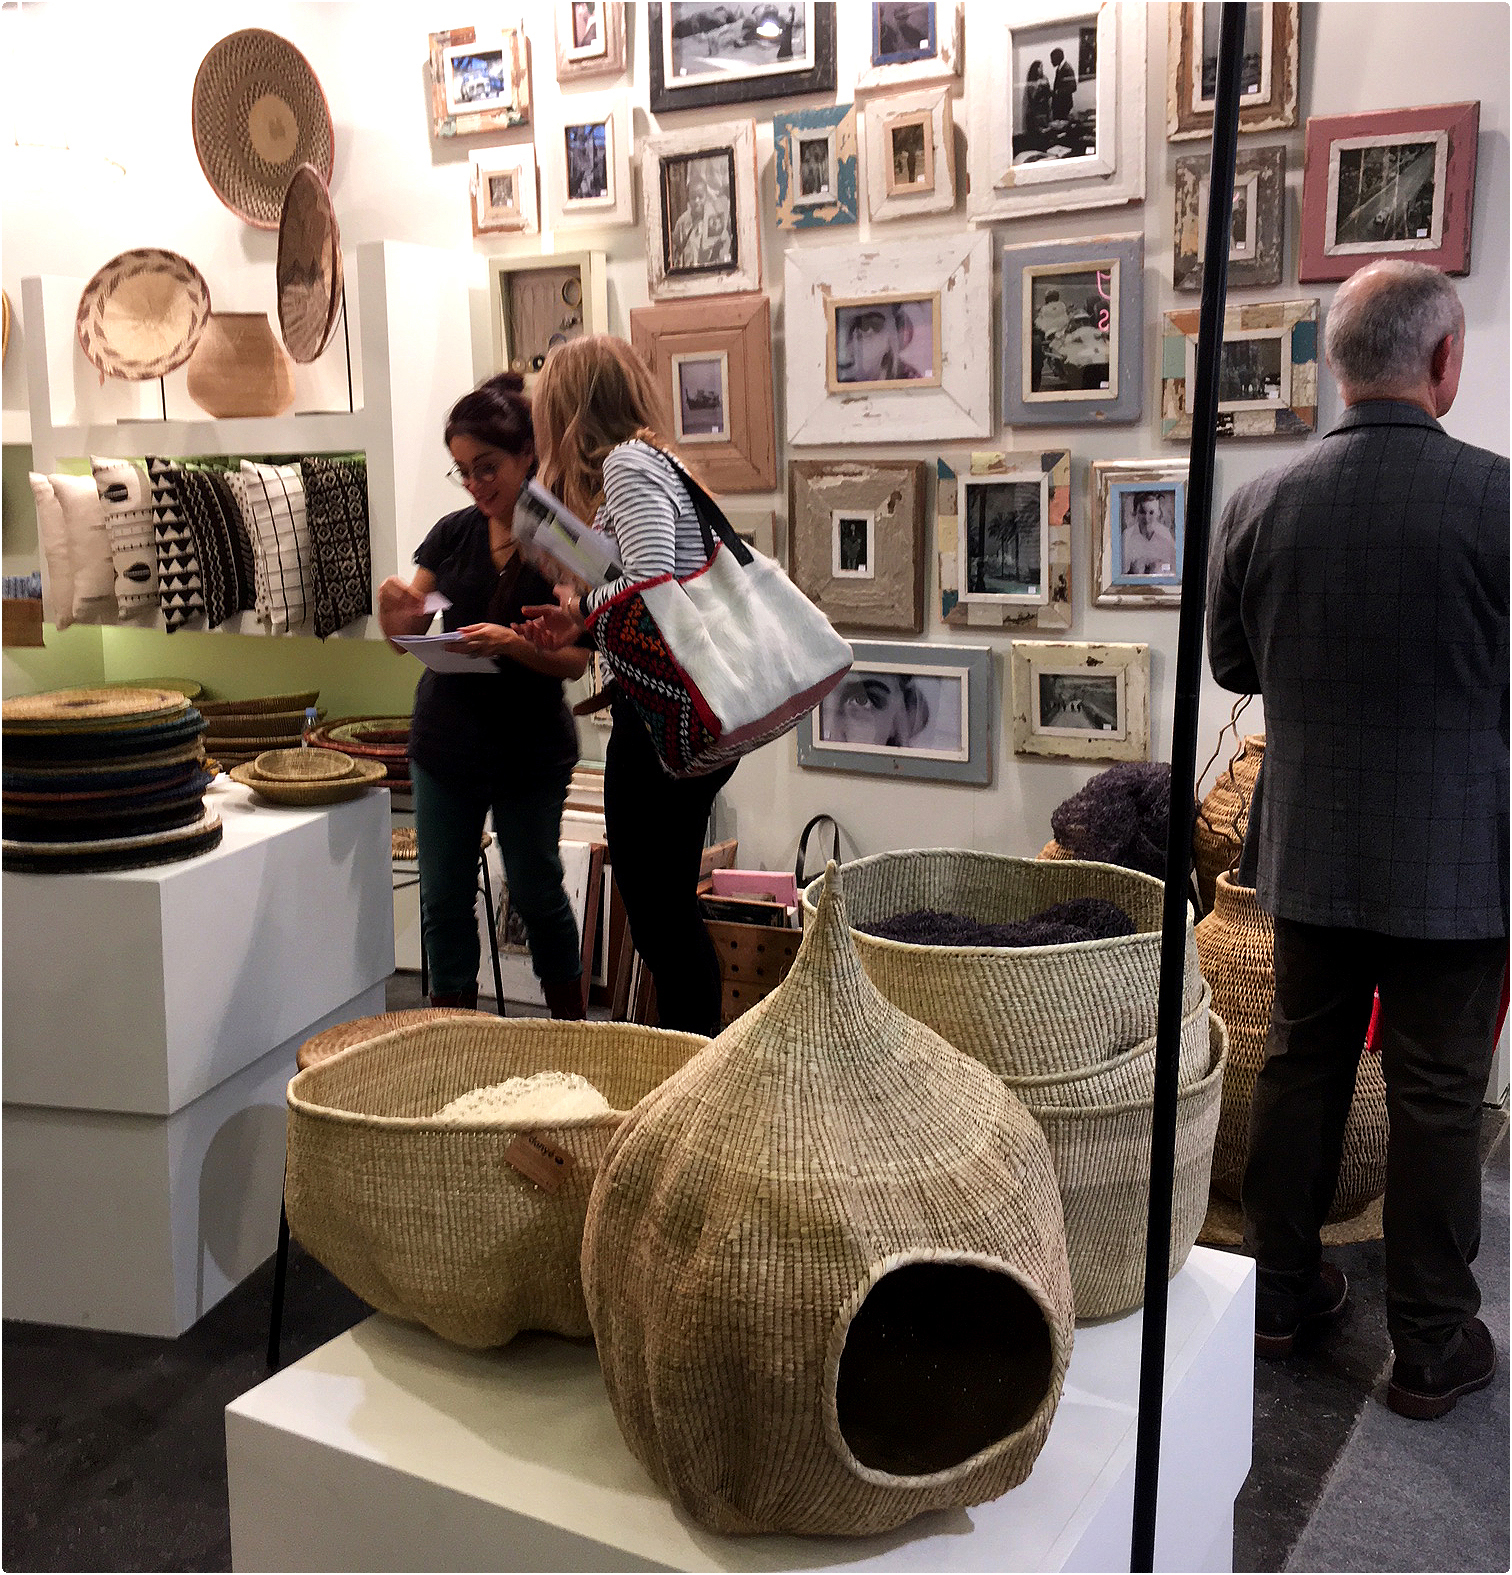 We are back from Maison&Objet - Paris